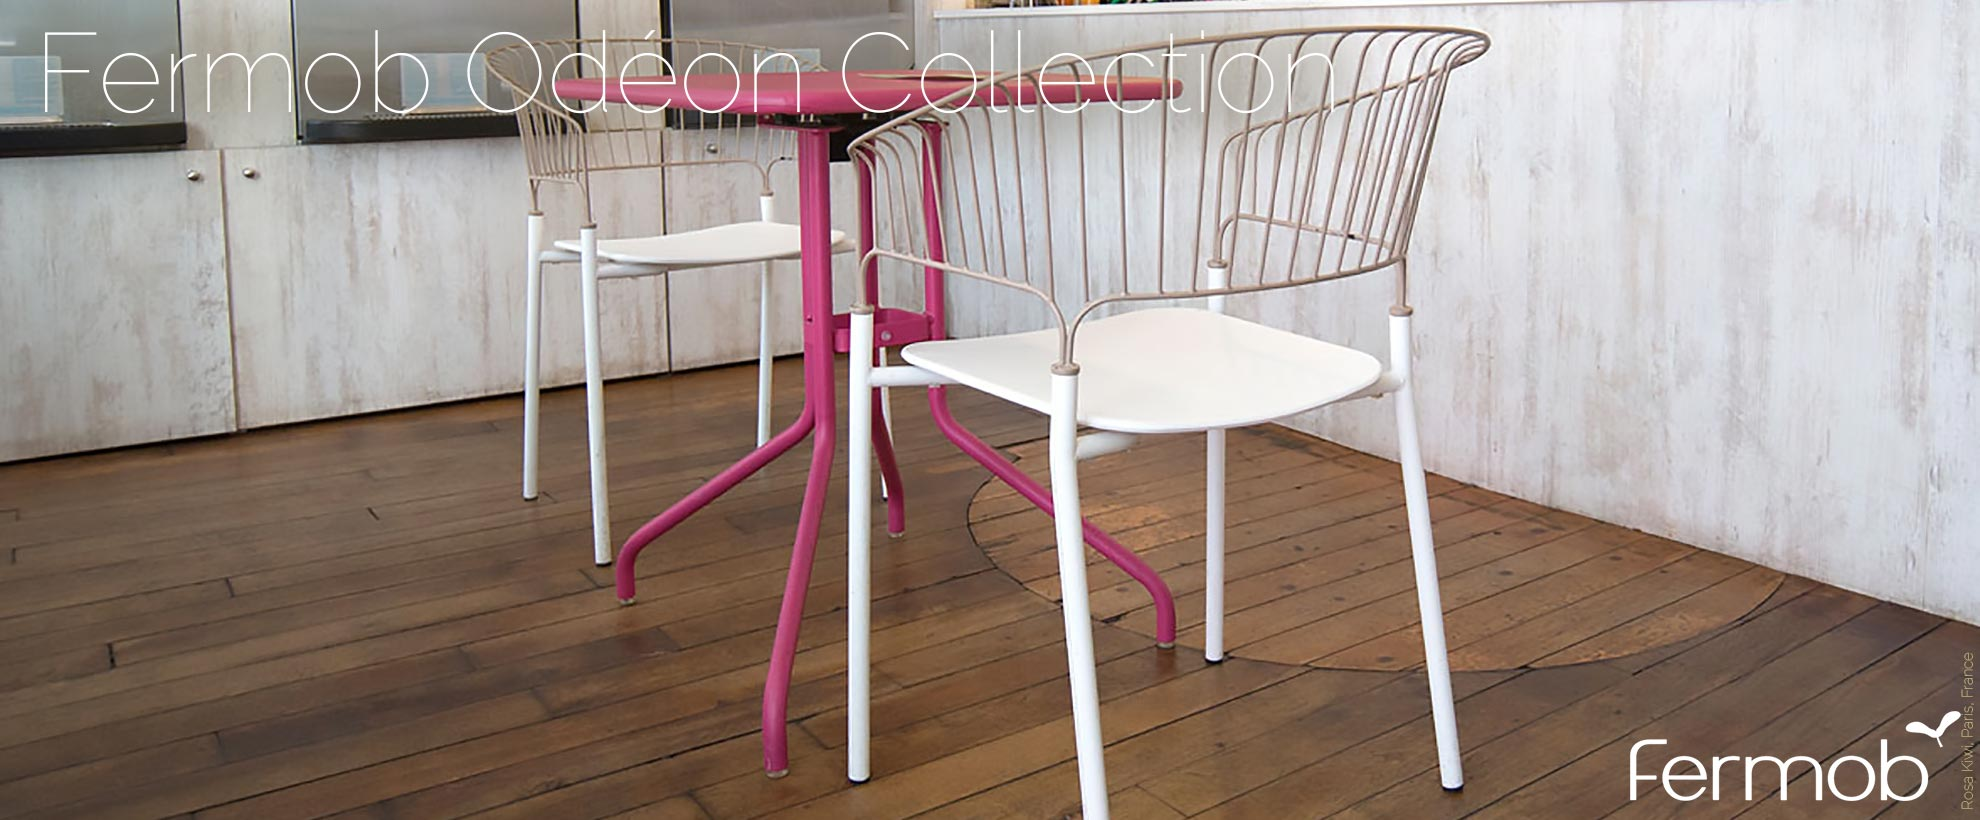 Fermob Odeon Collection